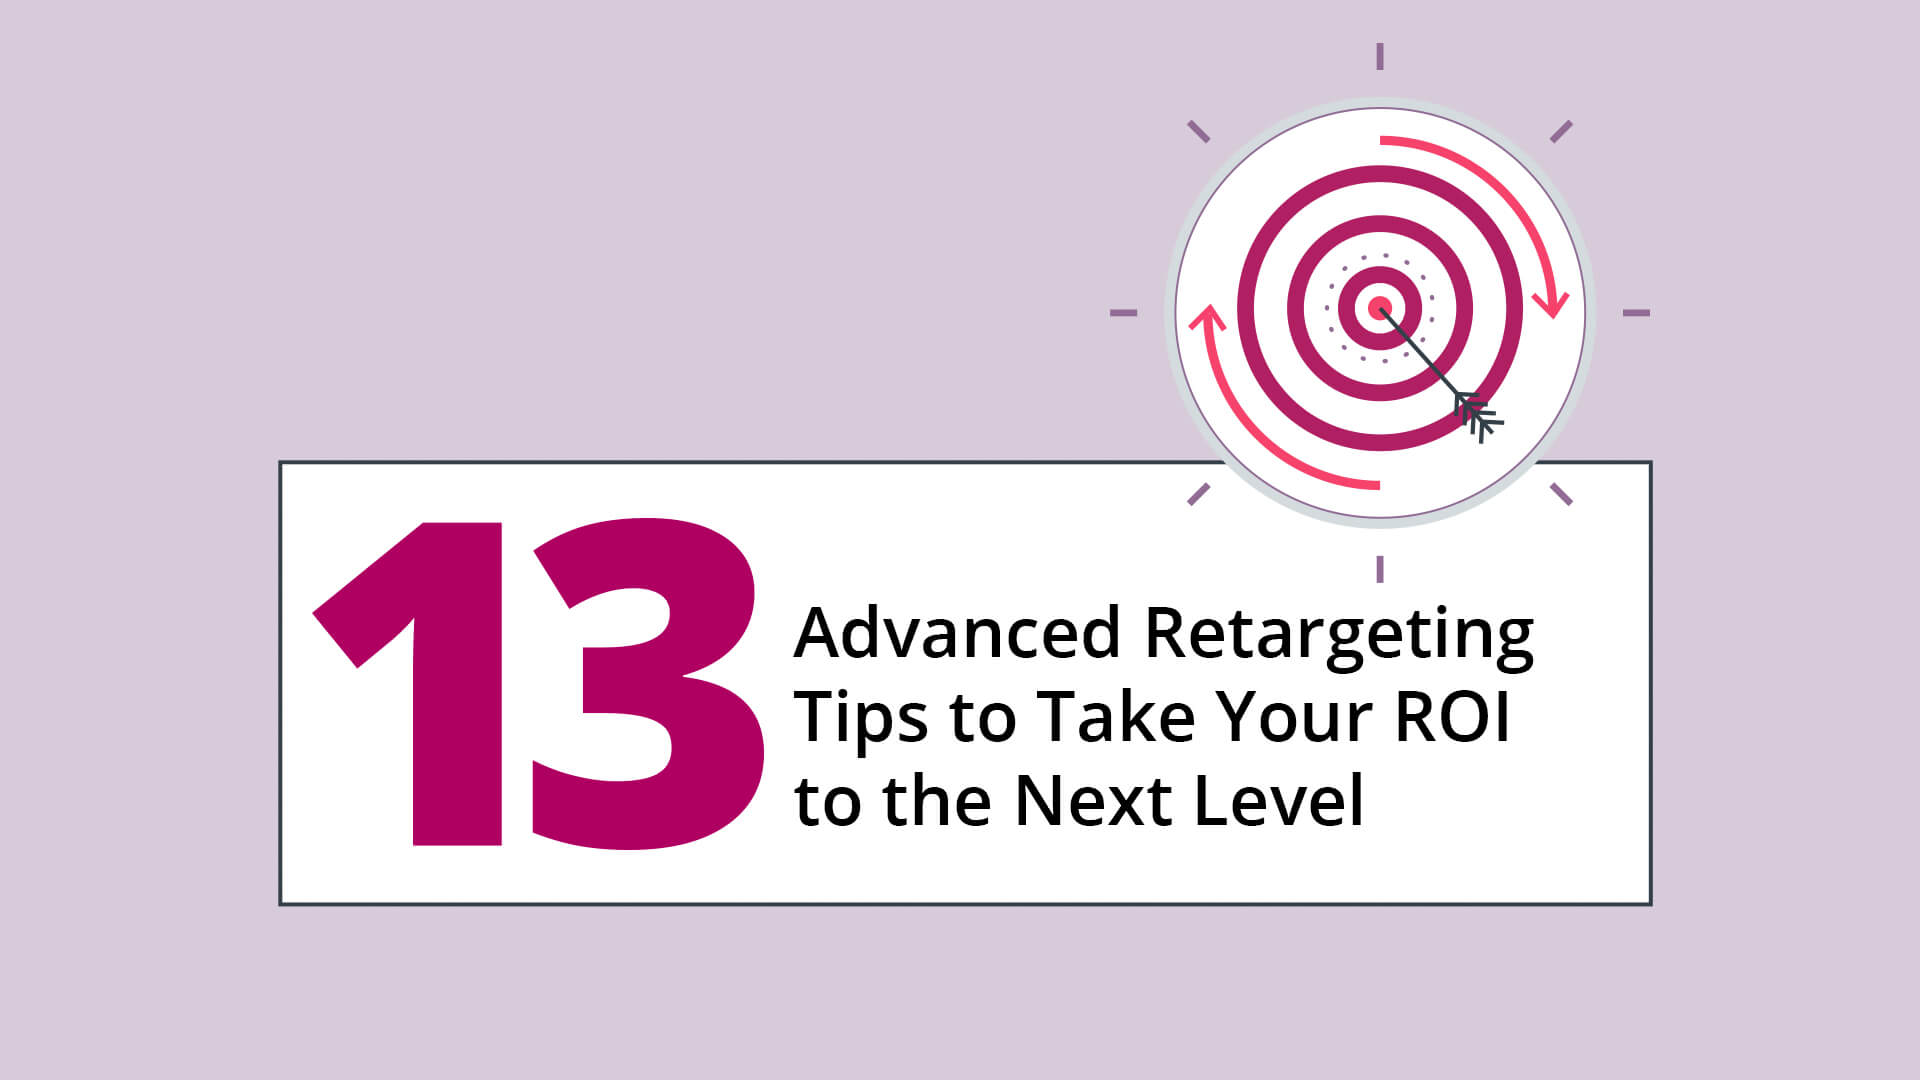 Advanced Retargeting Tips